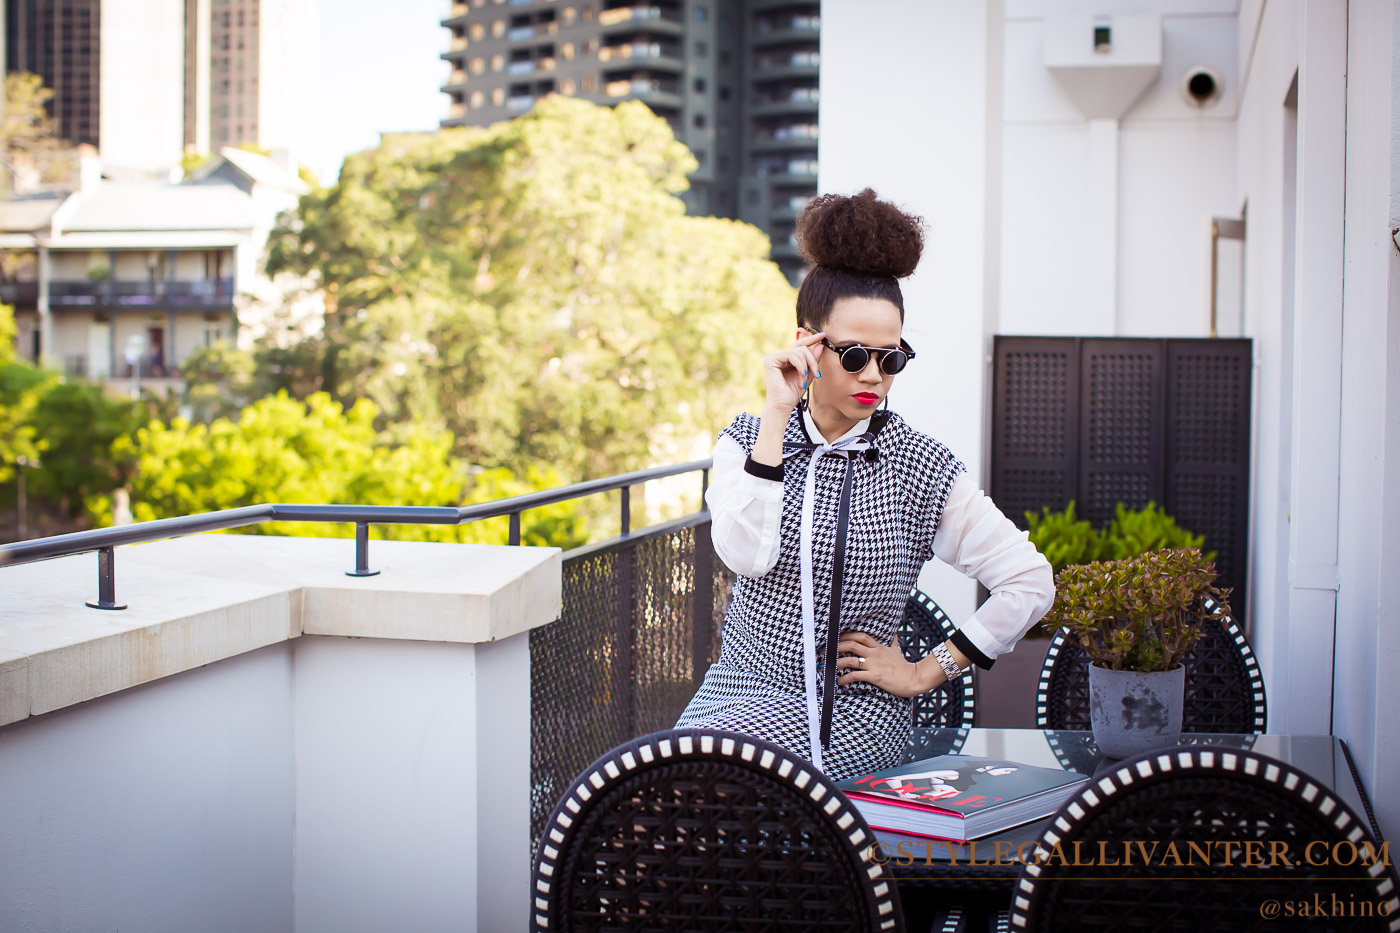 houndstooth-trends-2016_style-gallivanter-2016_top-bloggers-london-2016_liverpool-top-best-fashion-bloggers-2016_top-natural-hair-bloggers-uk-2016_Australian-top-style-bloggers-2016-19